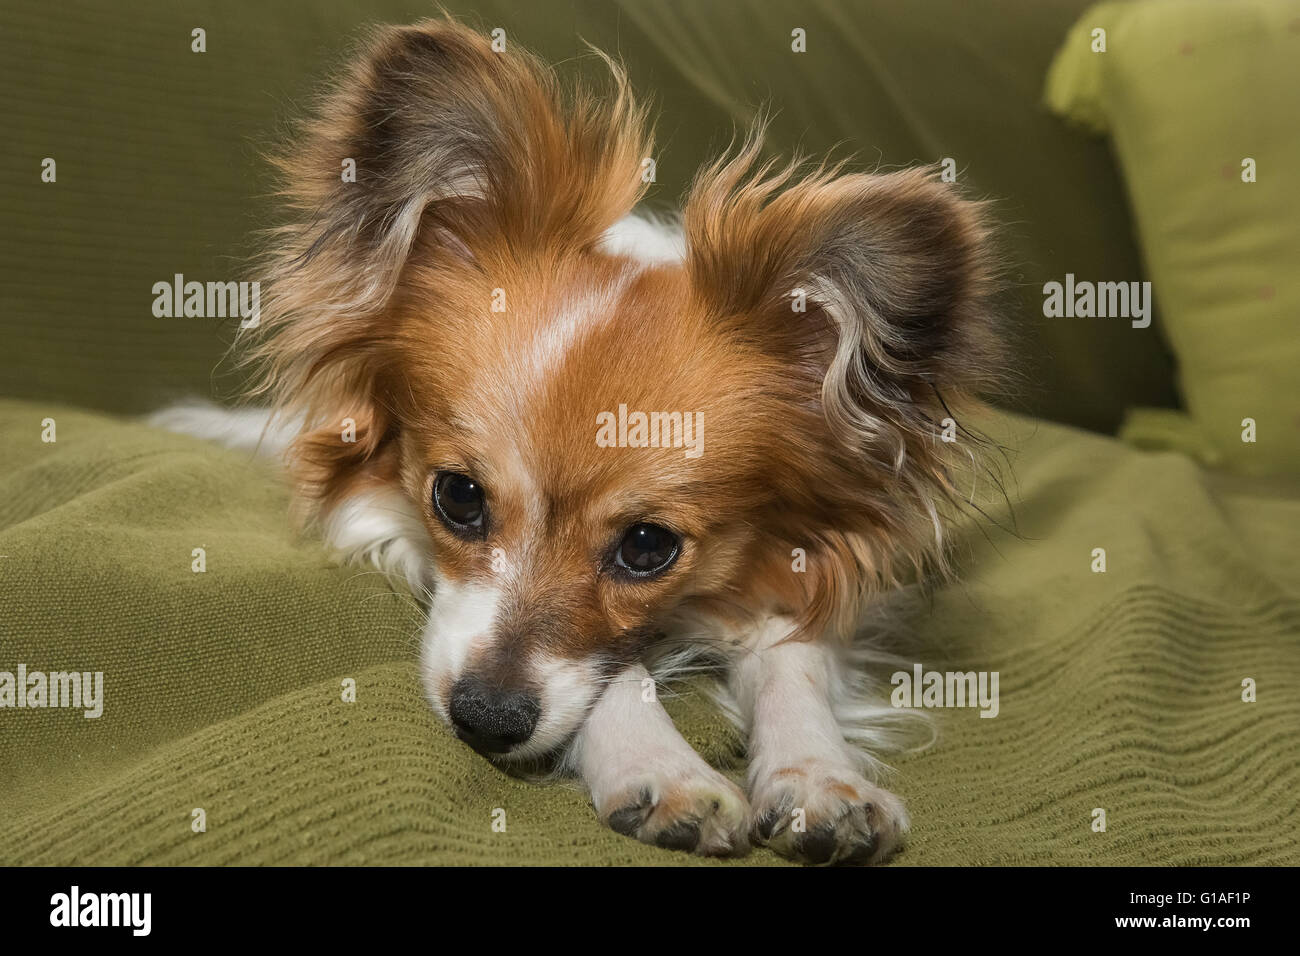 Papillon dog (Canis lupus familiaris) / Continental Toy Spaniel, Butterfly Dog - Stock Image